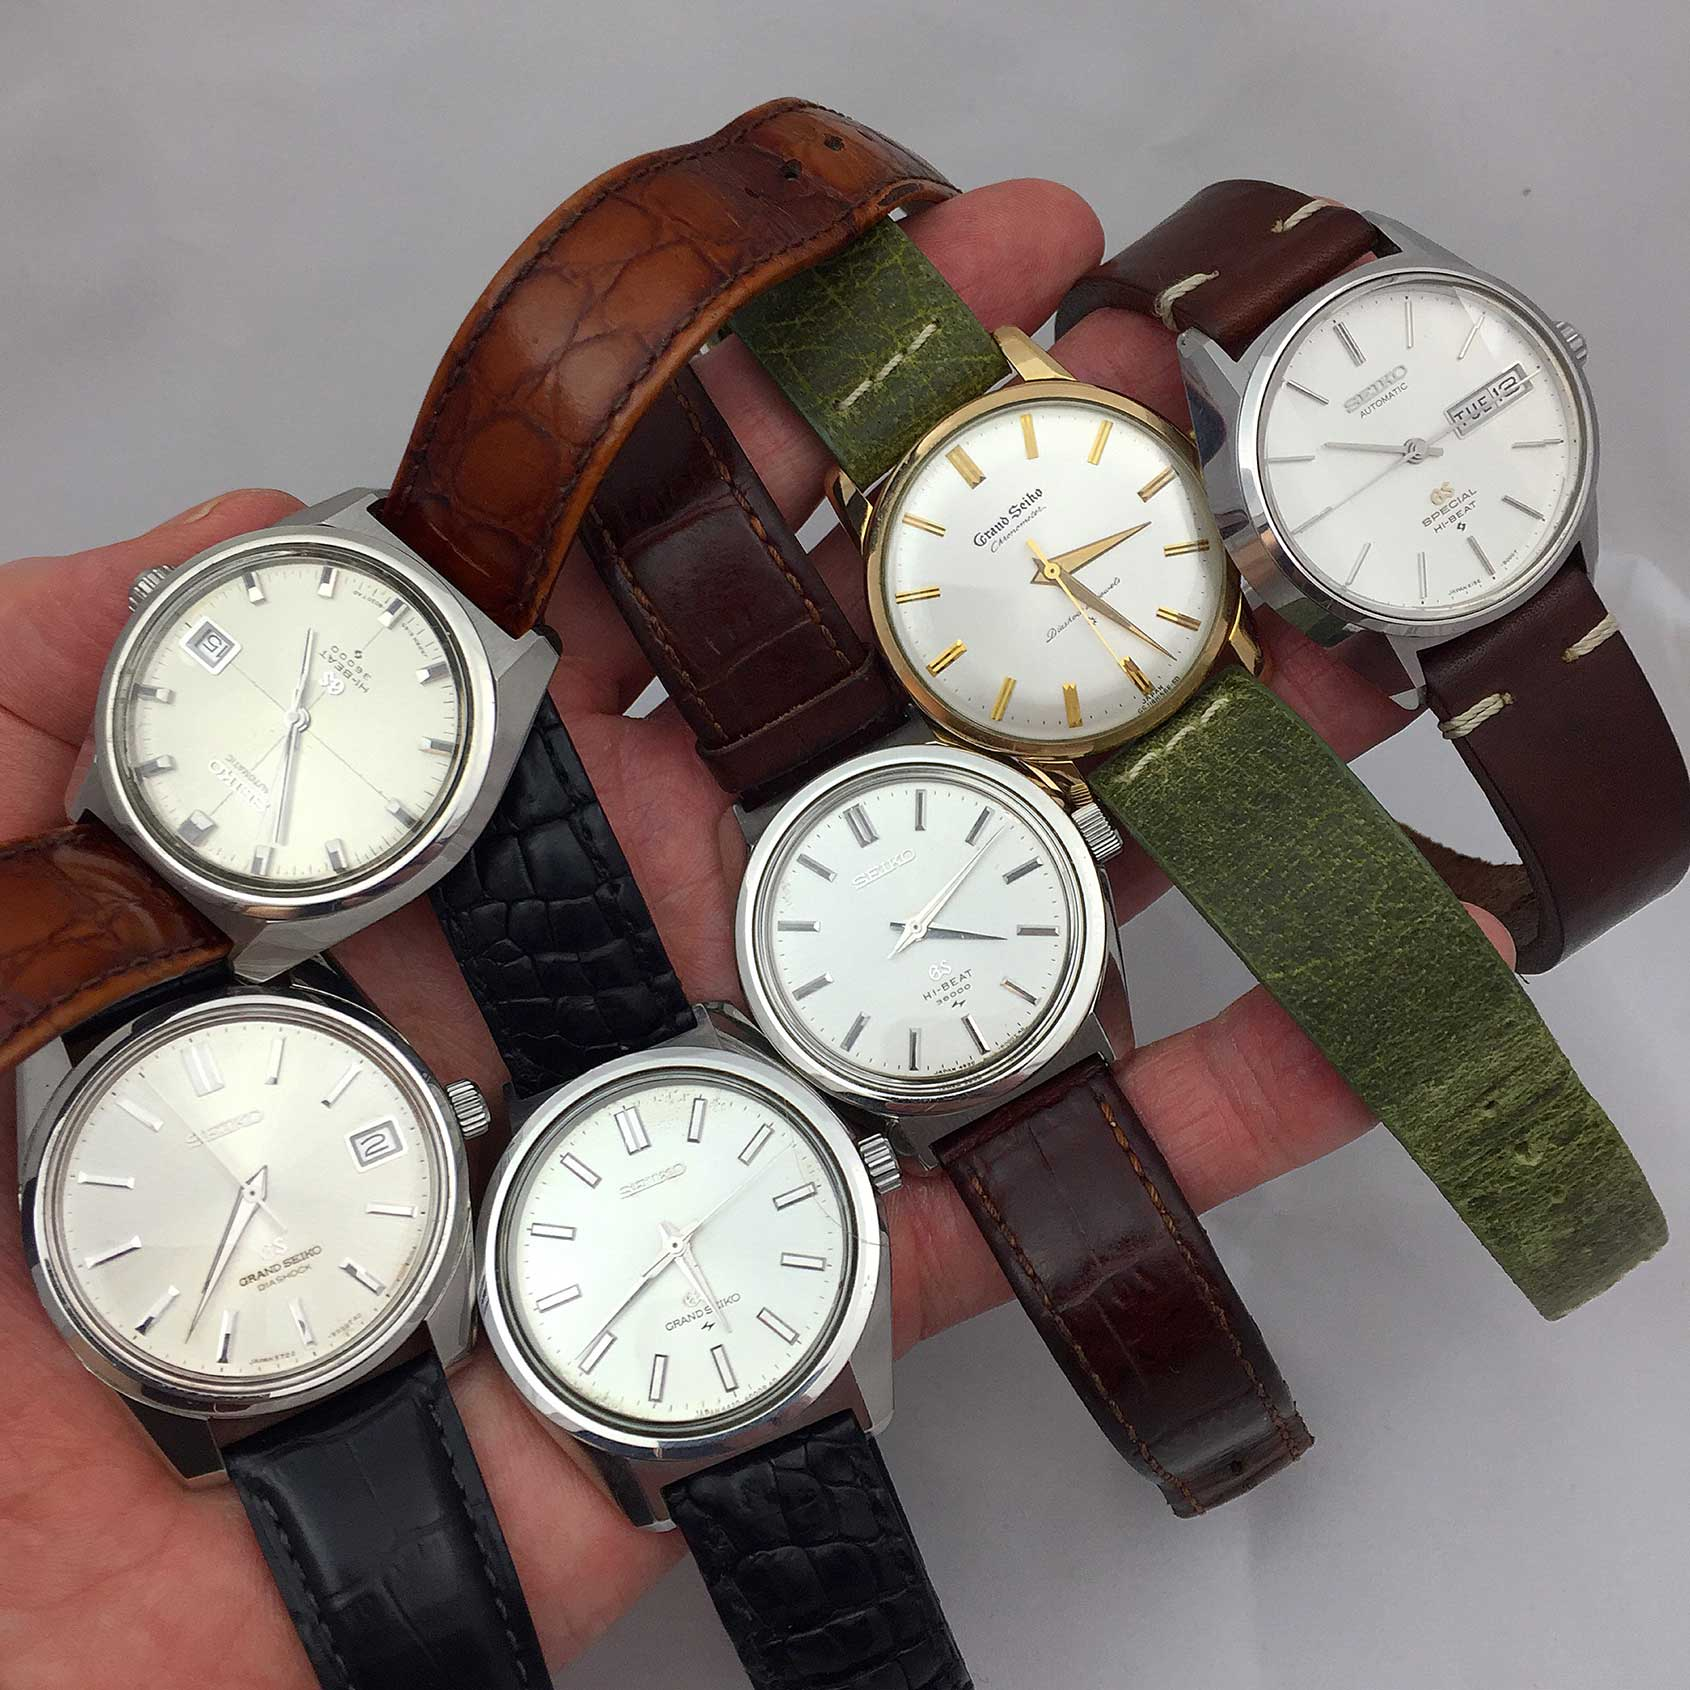 To buy or not to buy – how to curate your watch collection